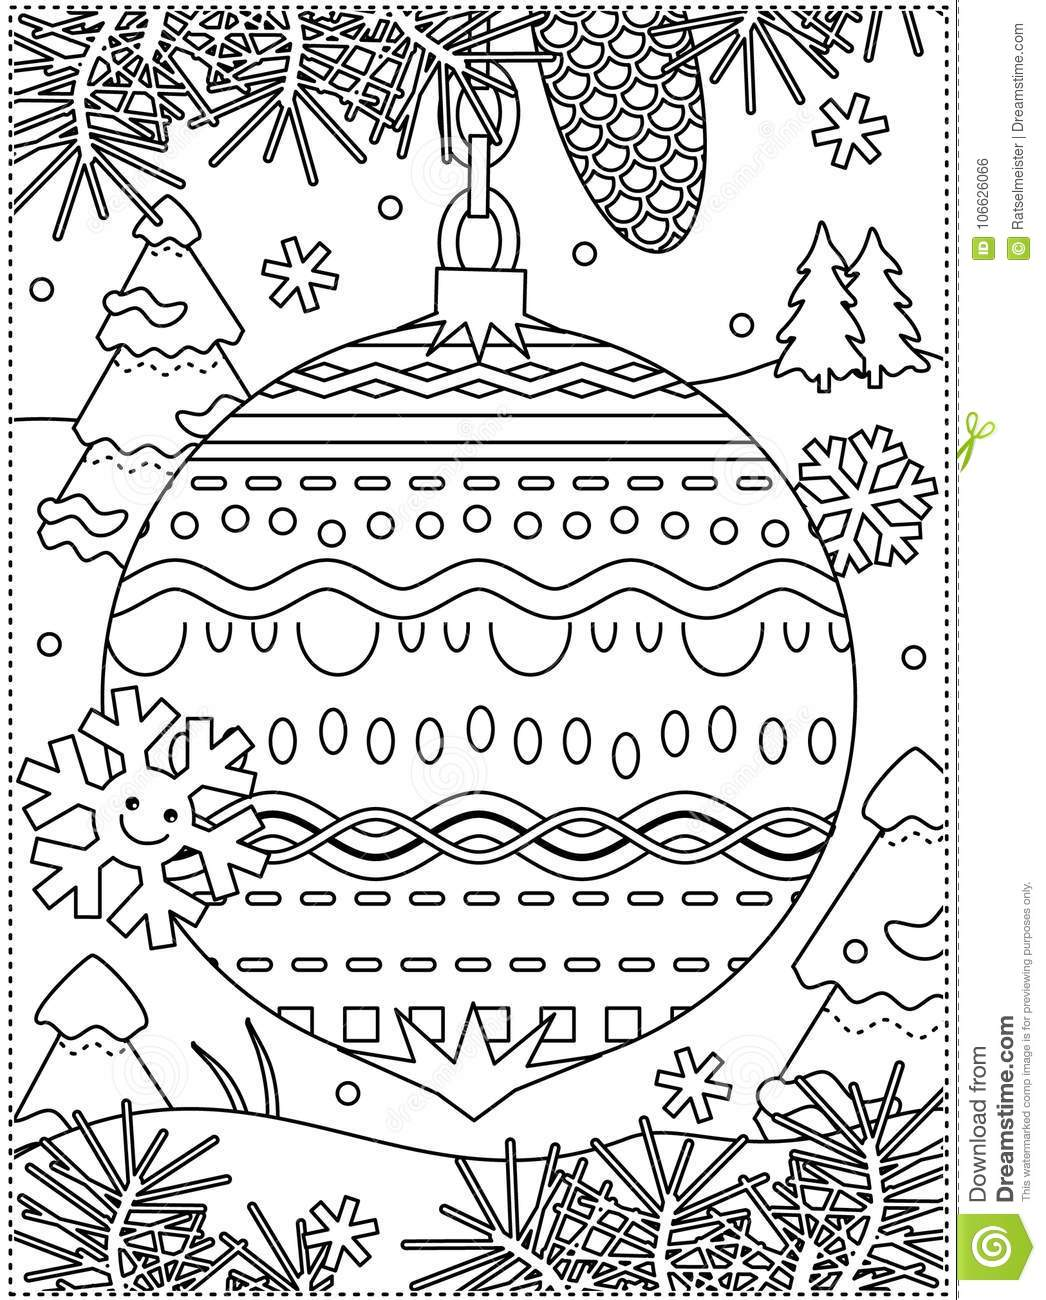 Winter Holidays Coloring Page With Decorated Ornament Stock Vector